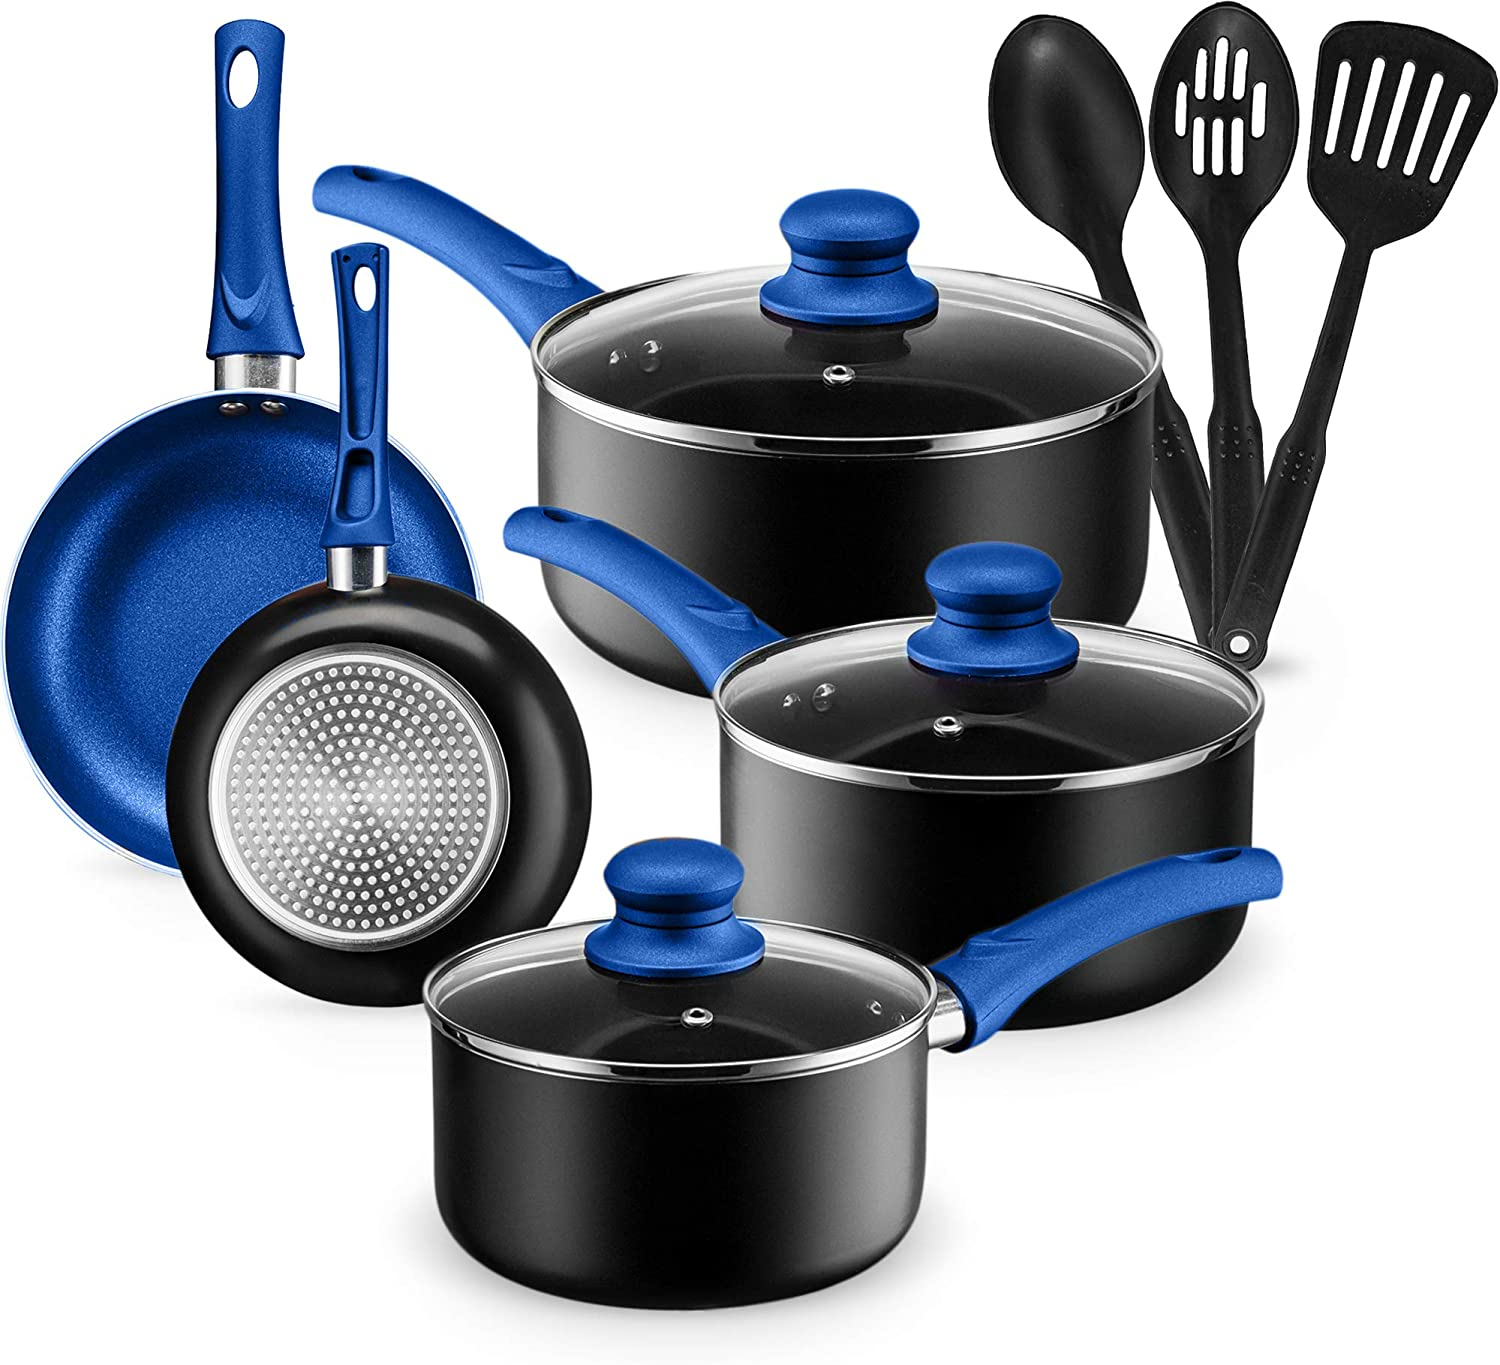 Chef's Star 11 Piece Pots and Pans Set Non-Stick Induction Ready 100% APEO, PFOA and PFOS Free (Blue)